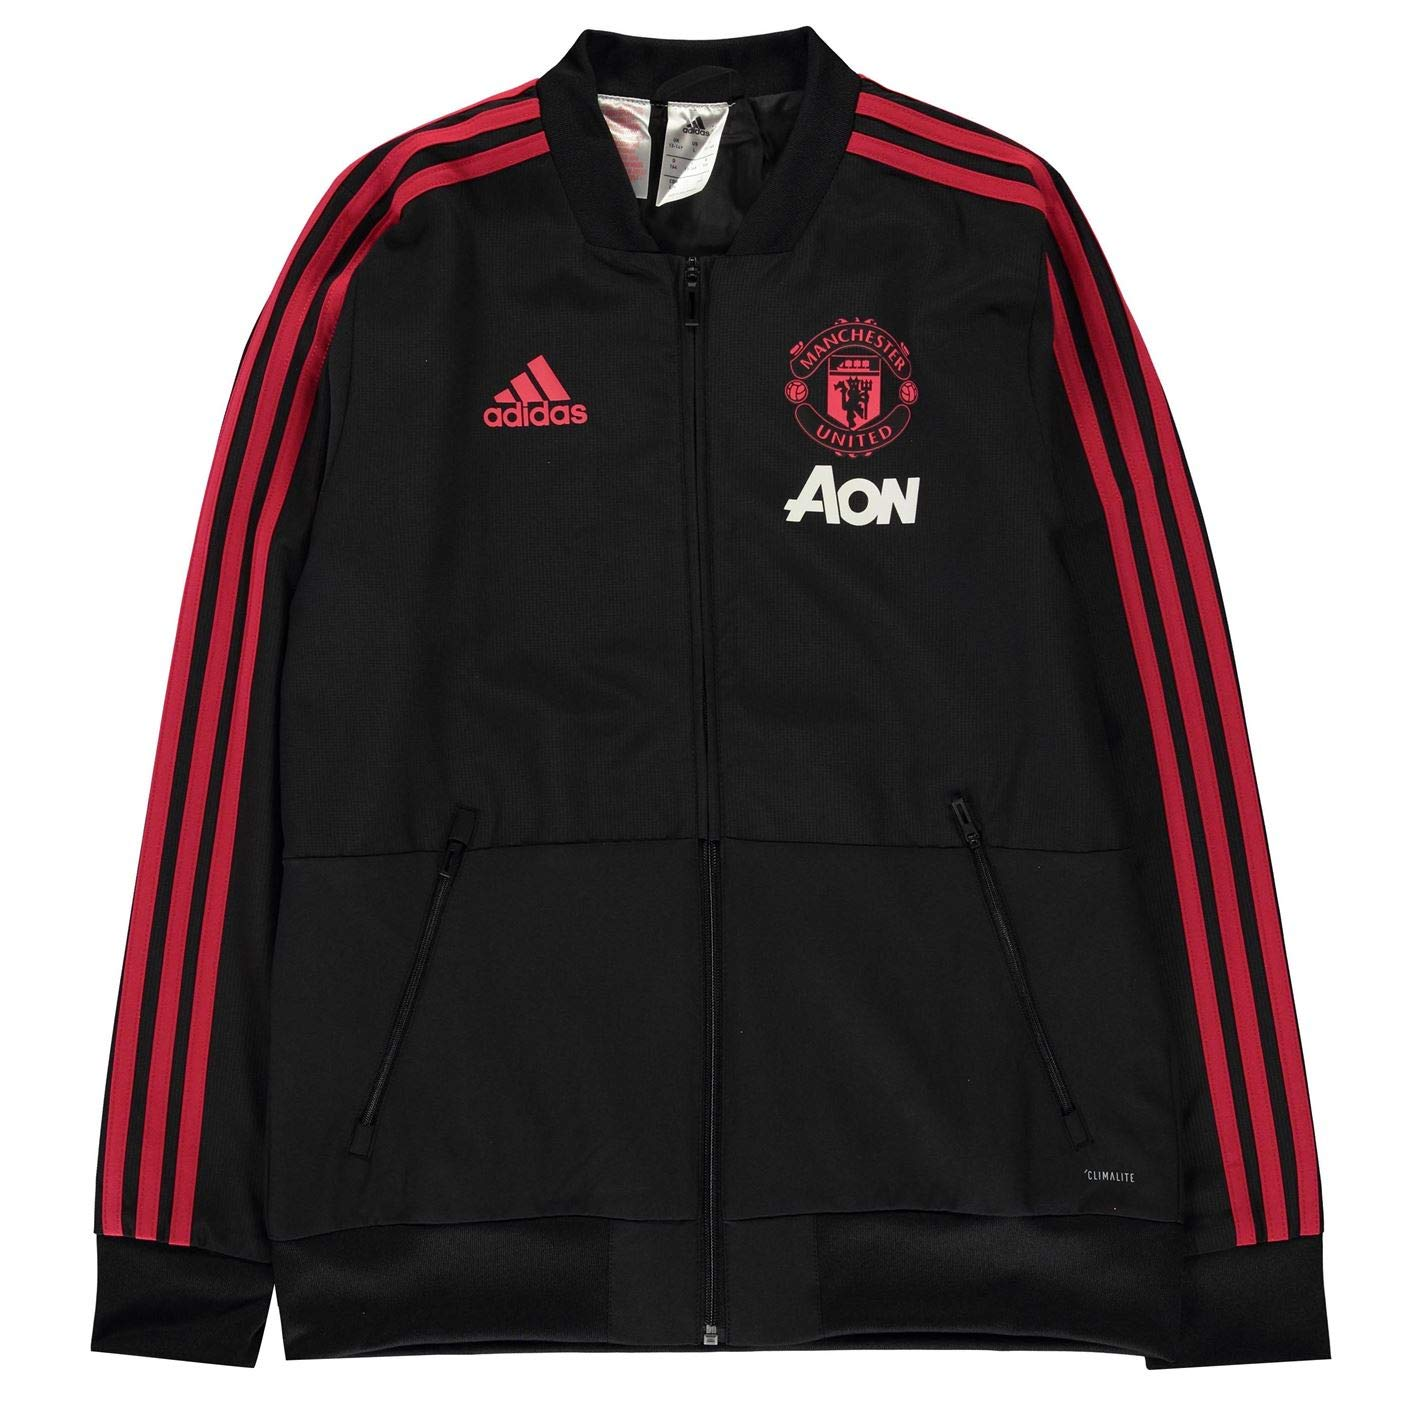 588b5cd31 adidas Children s Manchester United Fc Presentation Track Top   Amazon.co.uk  Sports   Outdoors